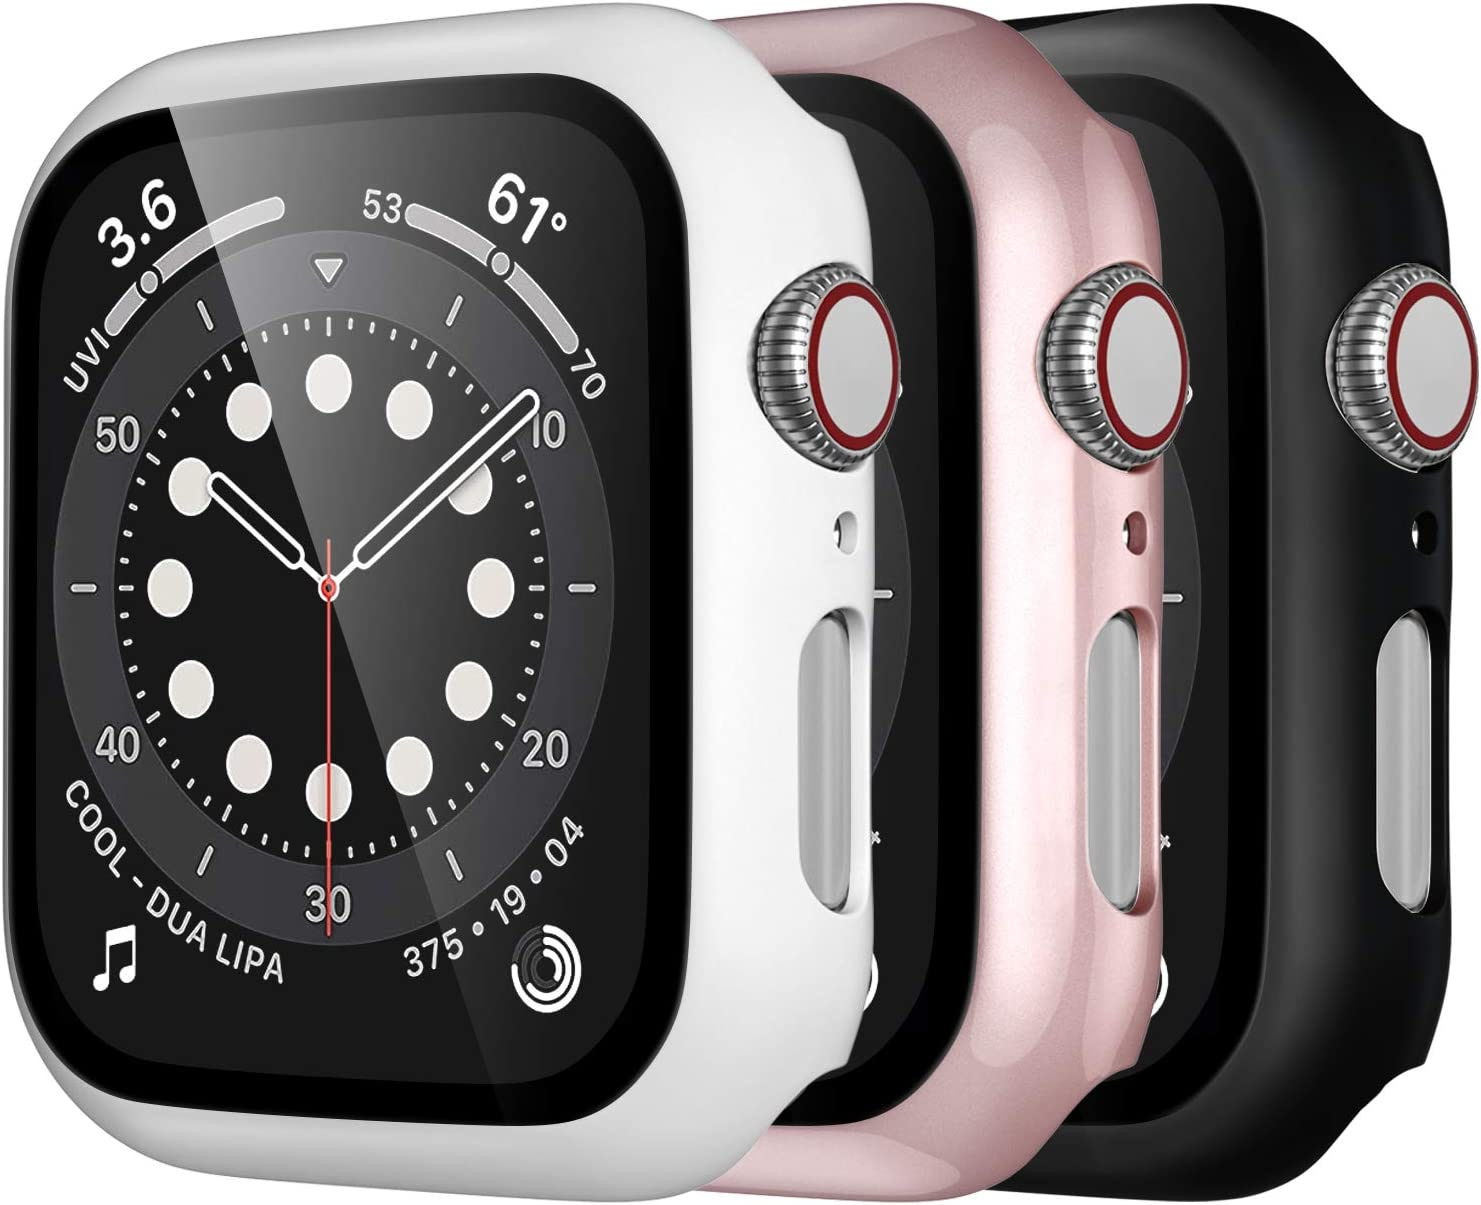 Mastten 3-Pack Case Compatible with Apple Watch Case Series 3 38mm, Bumper Protective Cover Compatible with Apple Watch Screen Protector 38mm with HD Tempered Glass, Black, Rose Gold, White